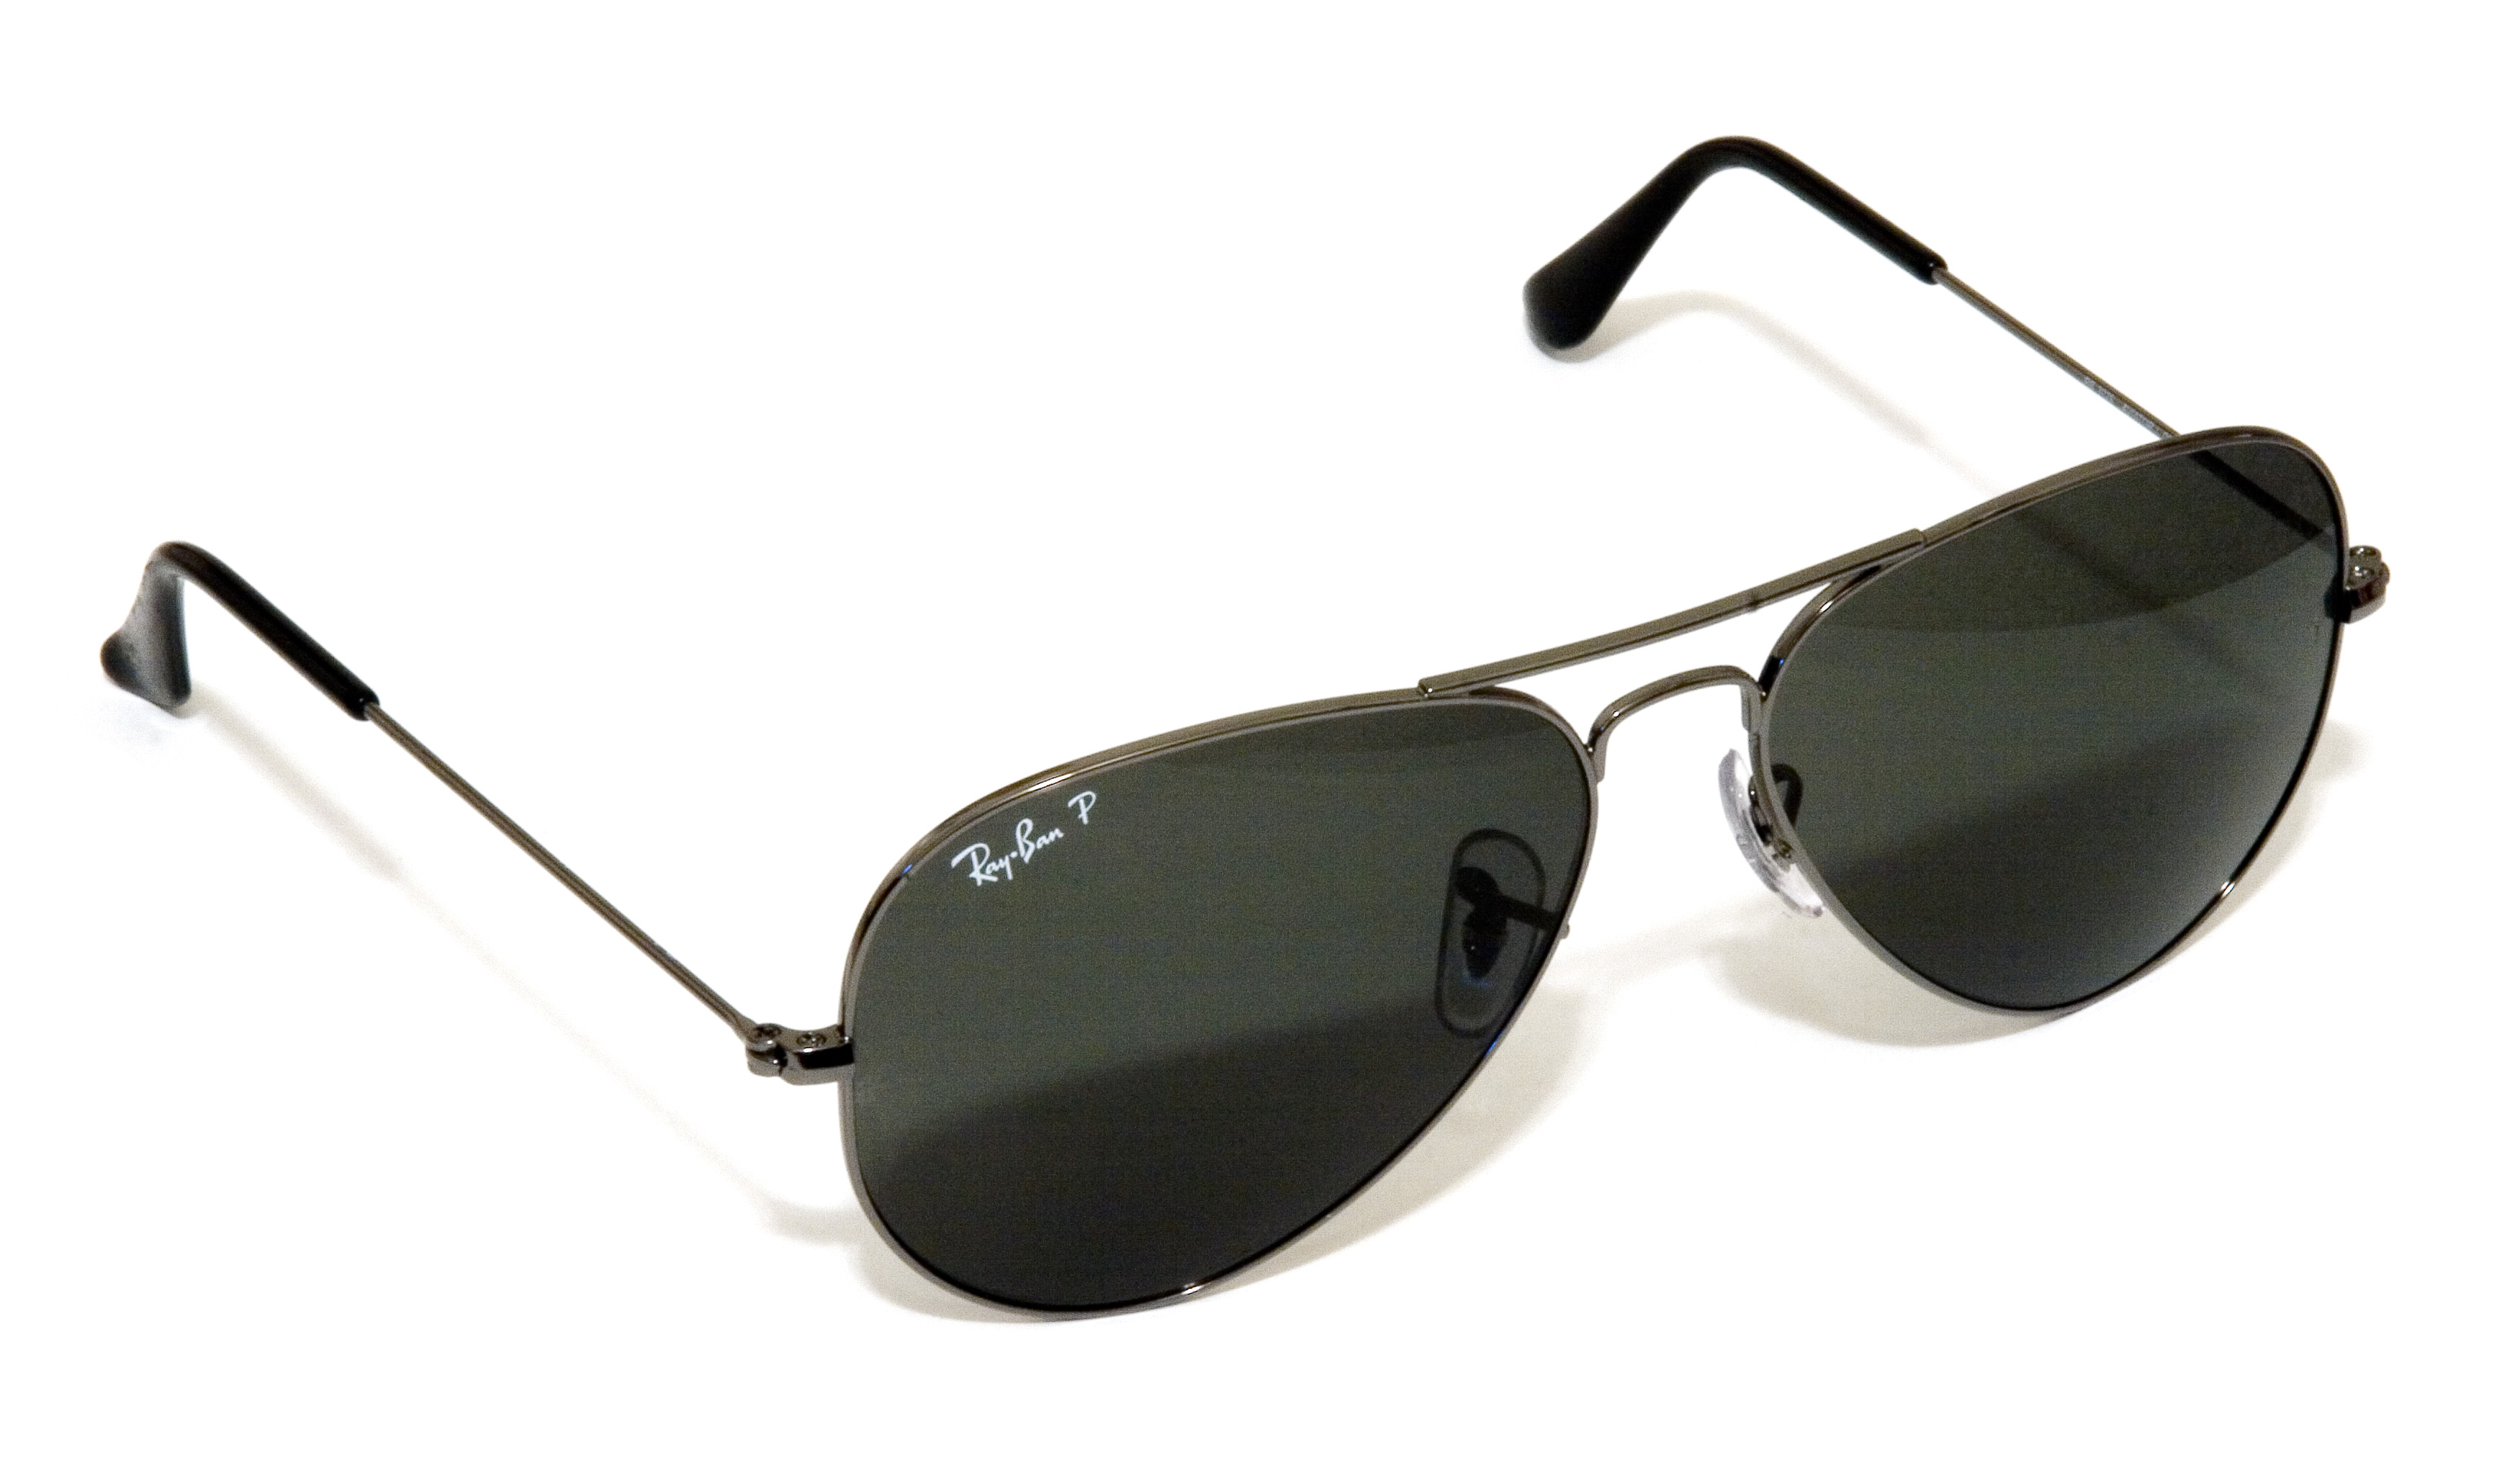 347a9df92 Aviator sunglasses - Wikipedia